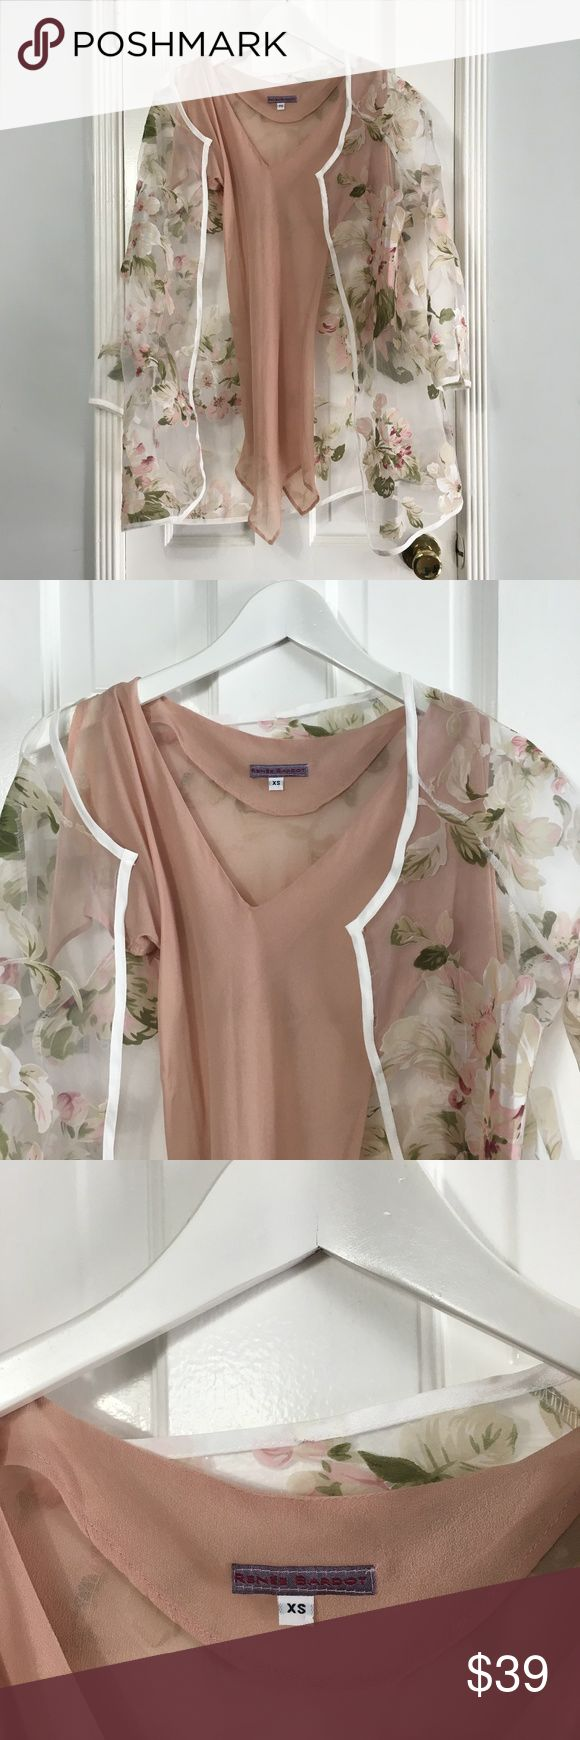 Renee Bardot flower blouse & camisole sz XS Renee Bardot flower blouse & camisole sz XS Made In: n/a Size:XS Fit: fitted Shoulders: 15 Chest: 29 Waist: 26 Length: camisole 27 - flower blouse 30 Material: polyester Color: pink, floral print Condition: Excellent #CoxyCloset #top #blouse #floral #printed #trasparent #romantic #summer #spring #chic #daywear #elegant Renee Bardot Tops Blouses